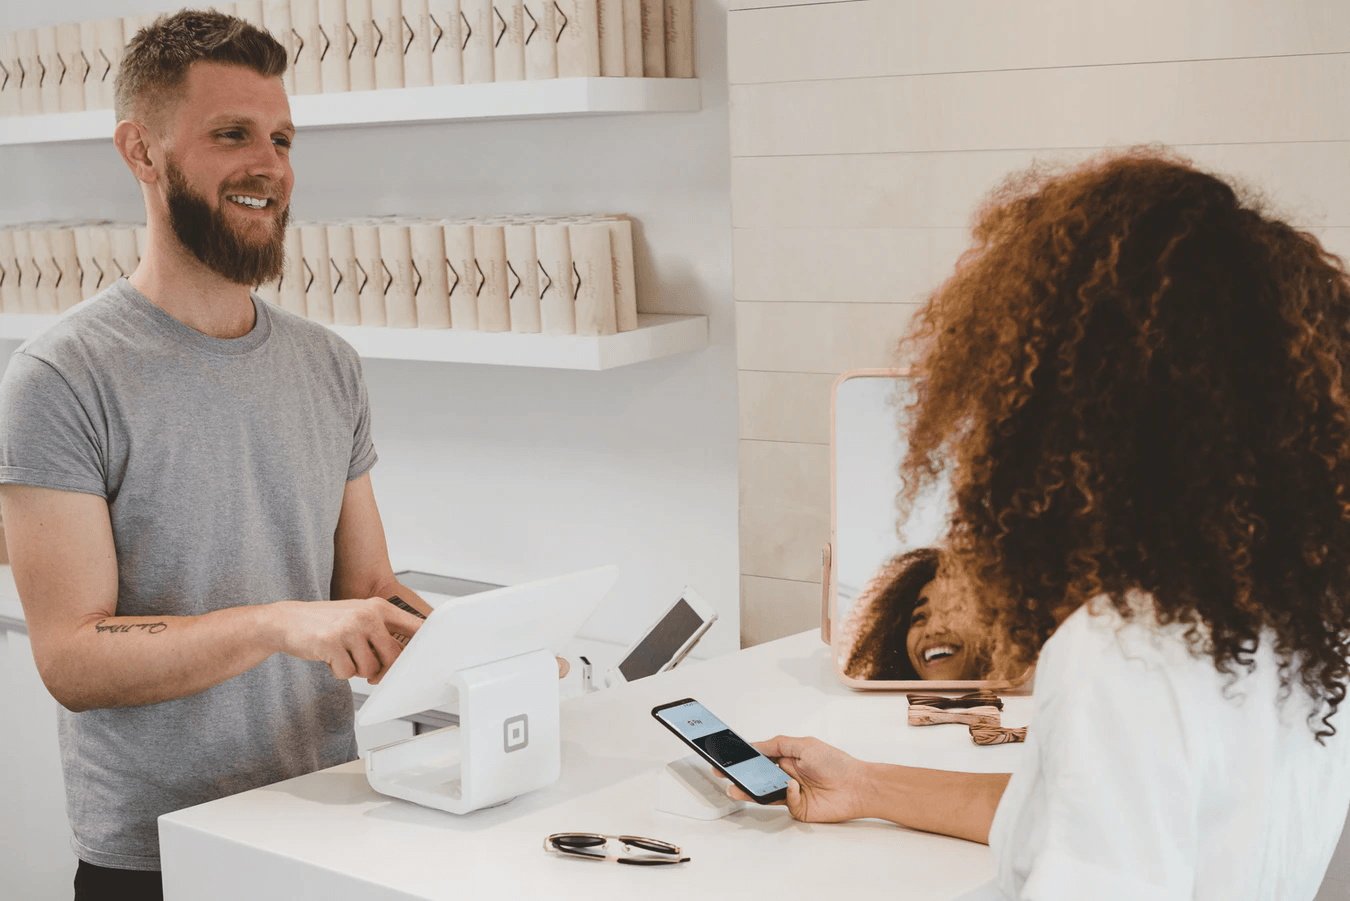 how to attract new customers customer at store making payment